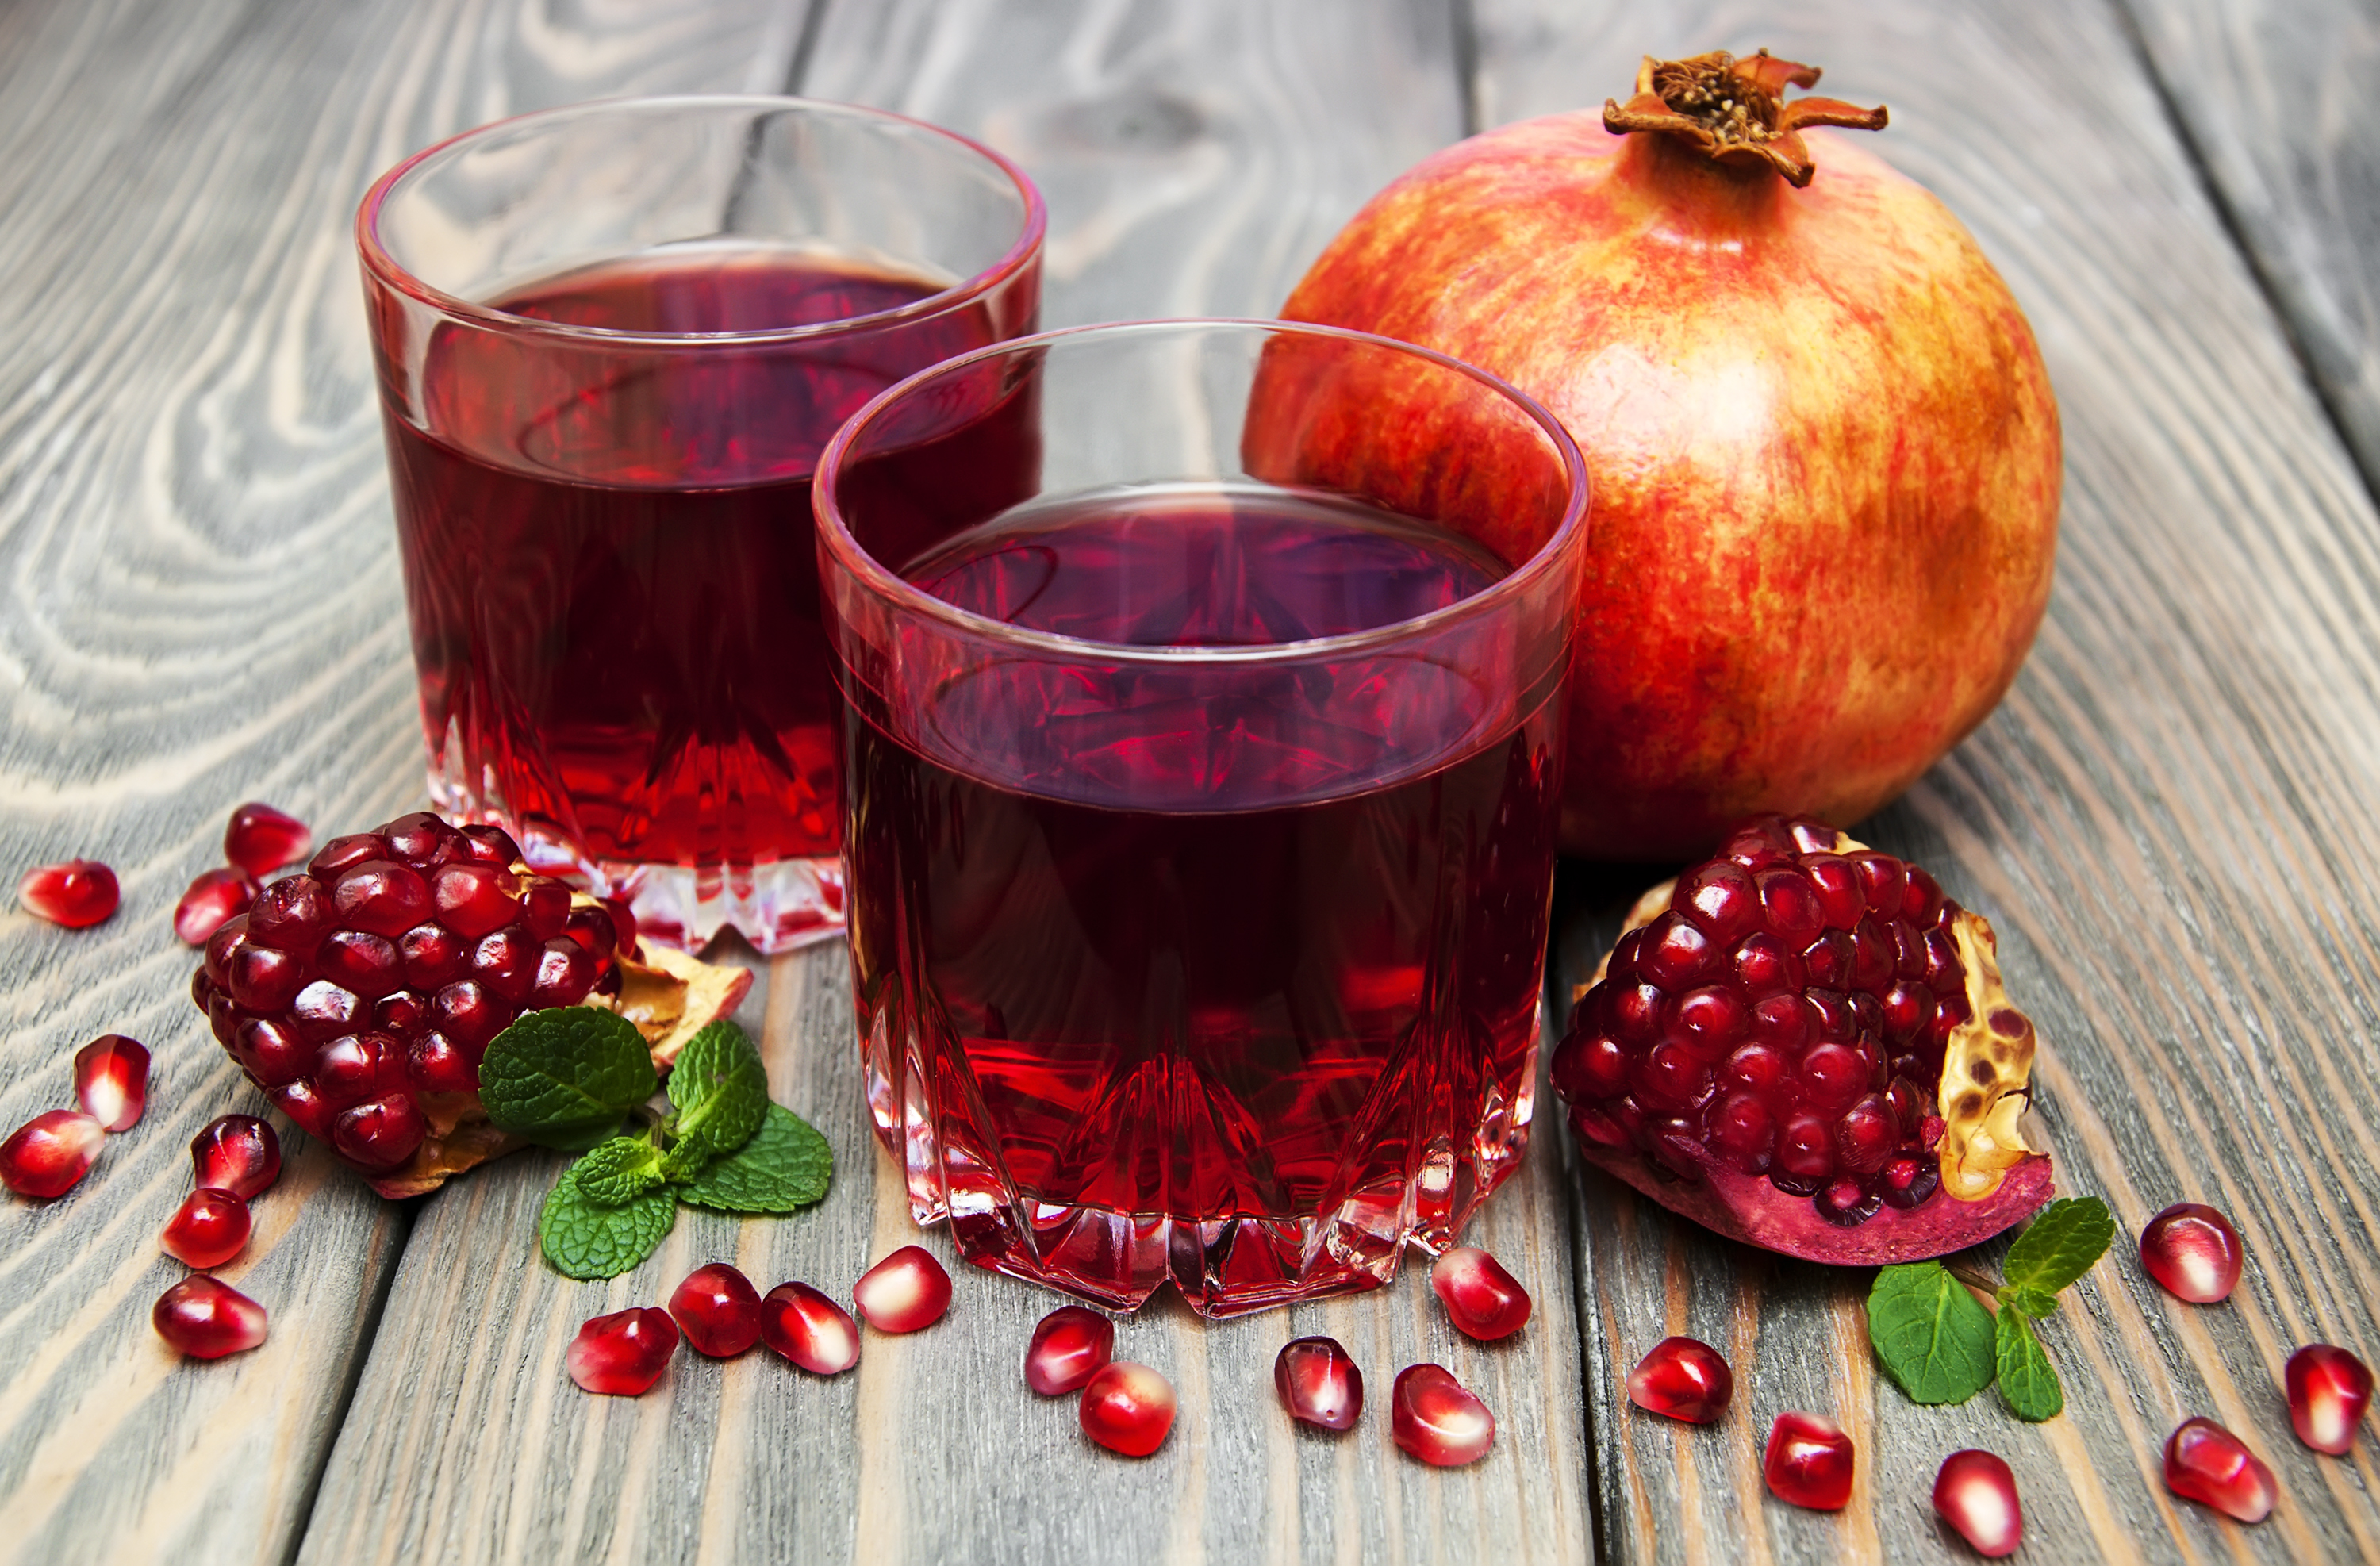 Pomegranate juice may protect unborn babies' brains